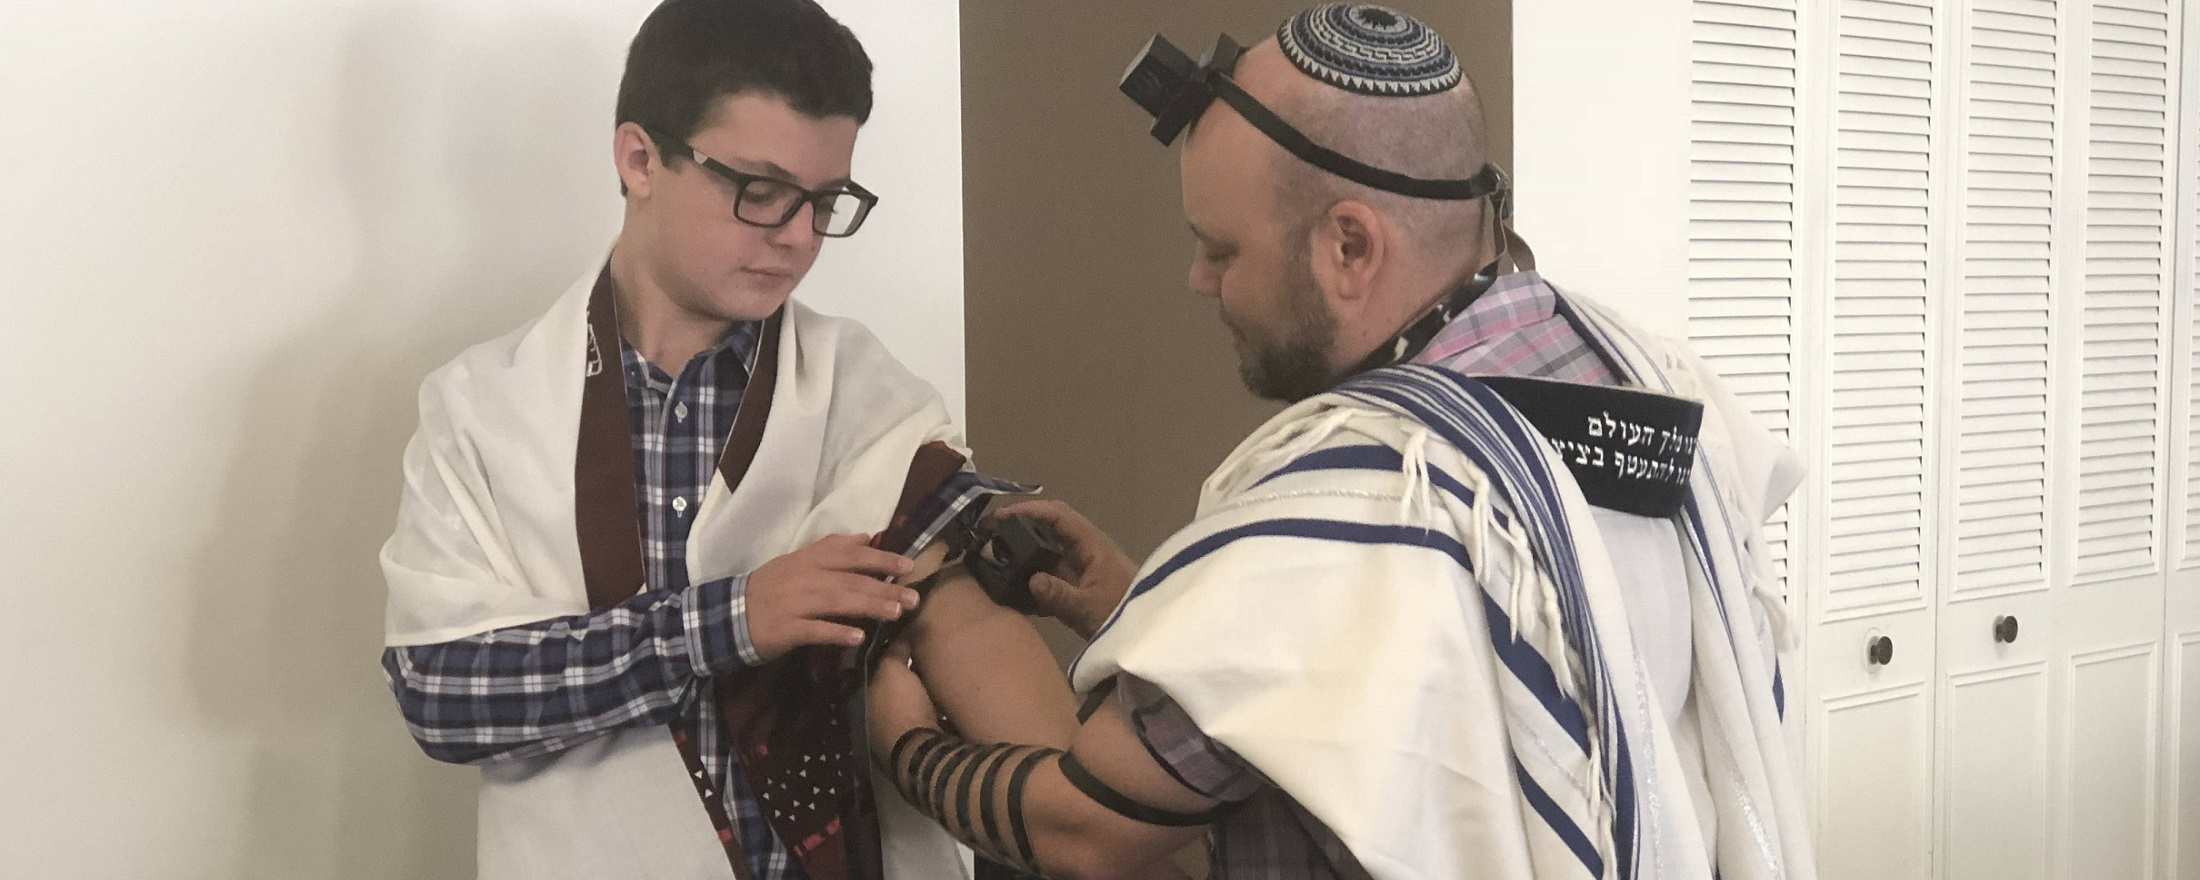 "<a href=""https://www.shaareikodesh.org/rabbis-message""